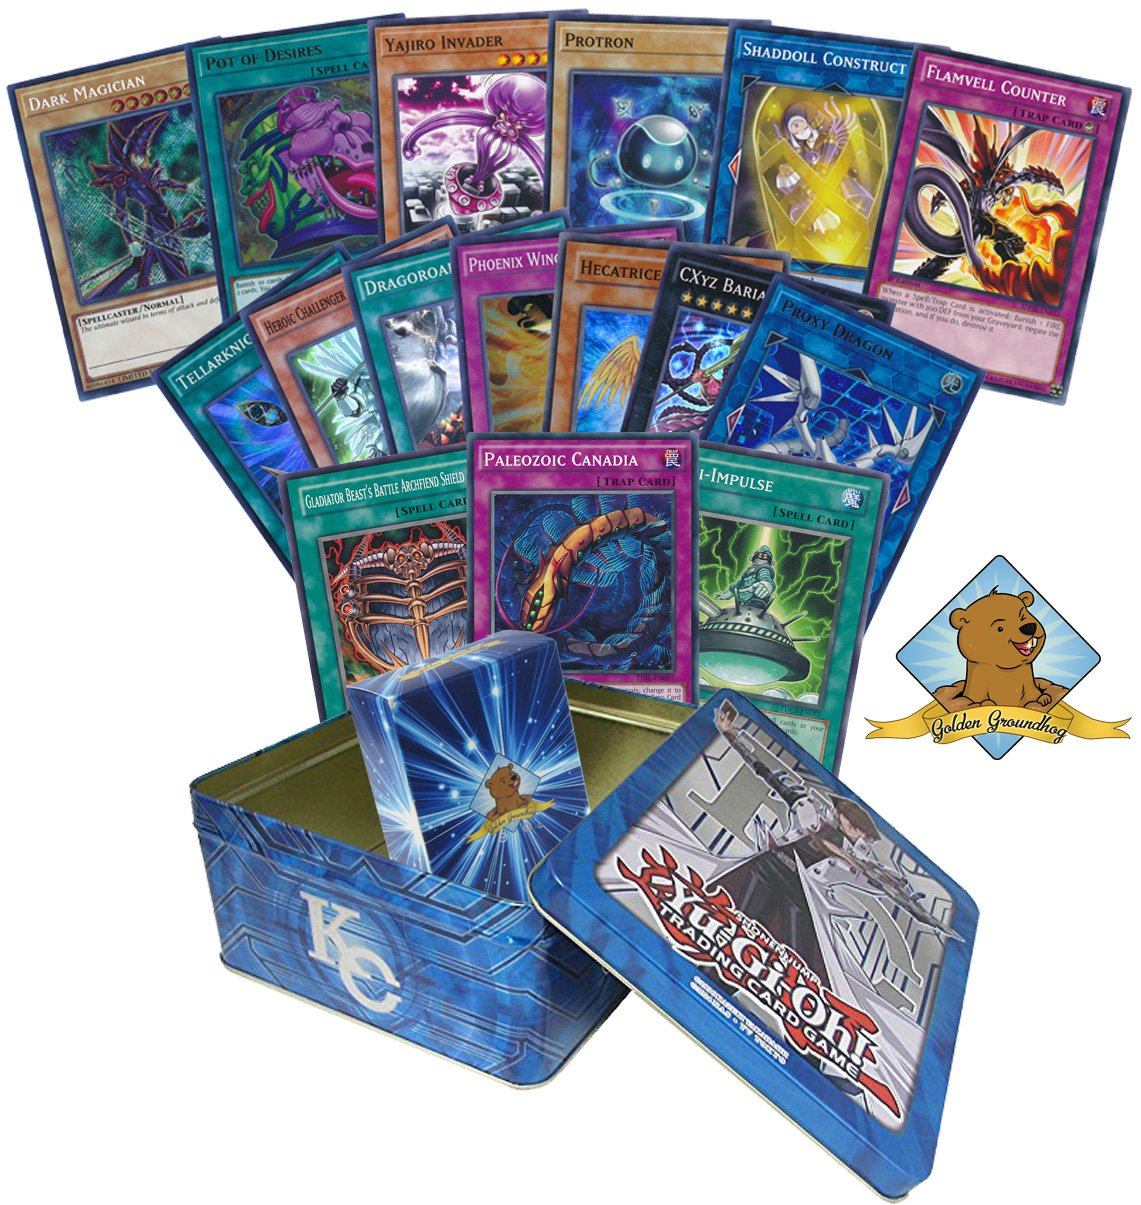 200 Yugioh Card Lot - Featuring Yugioh Holo Cards! Comes In Yugioh Tin! Includes Golden Groundhog Deck Box! by GoldenGroundhog